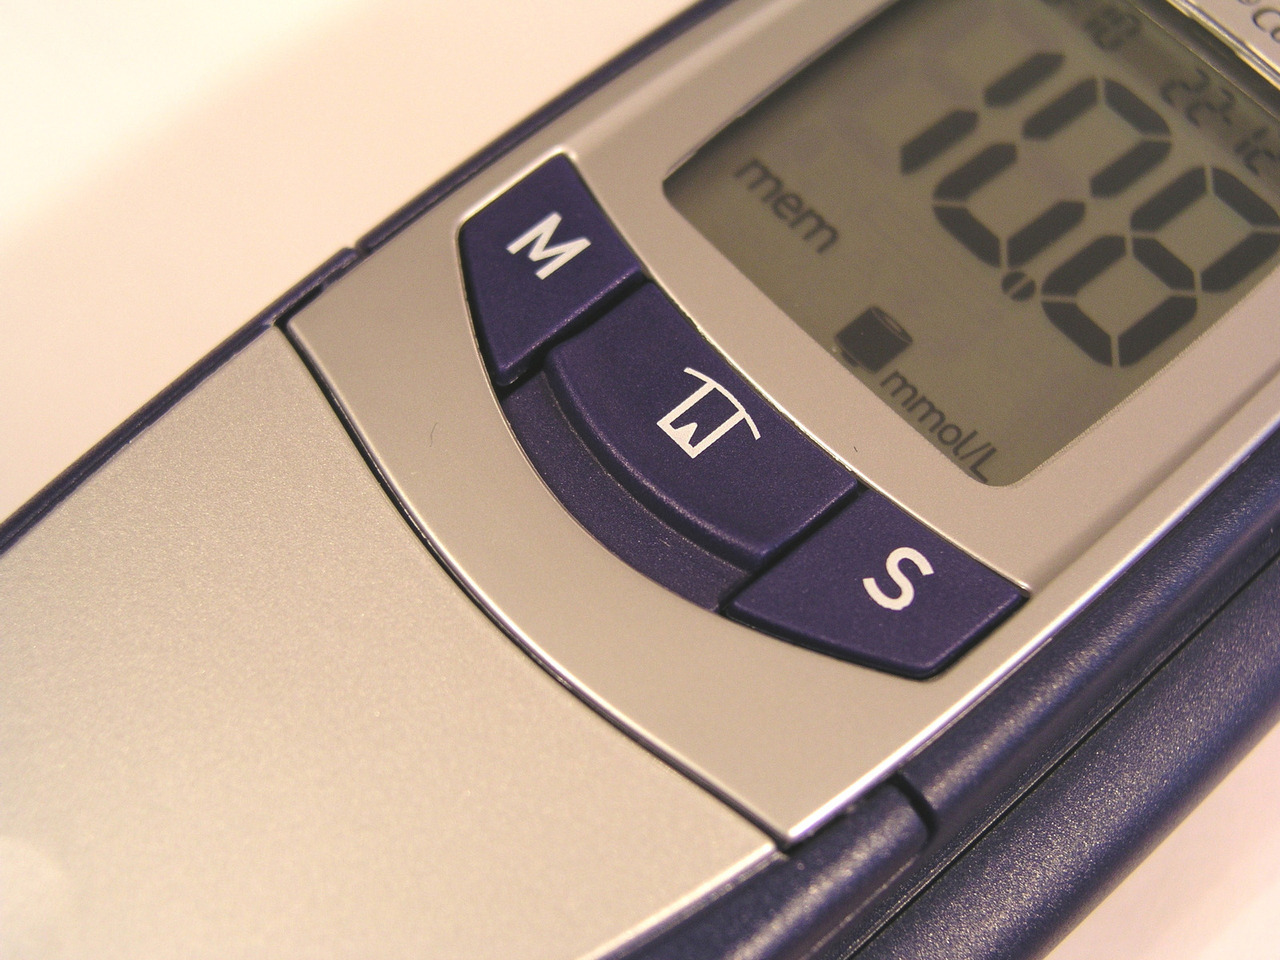 blood-glucose-measure-diabetes-check-1195302-1280x960